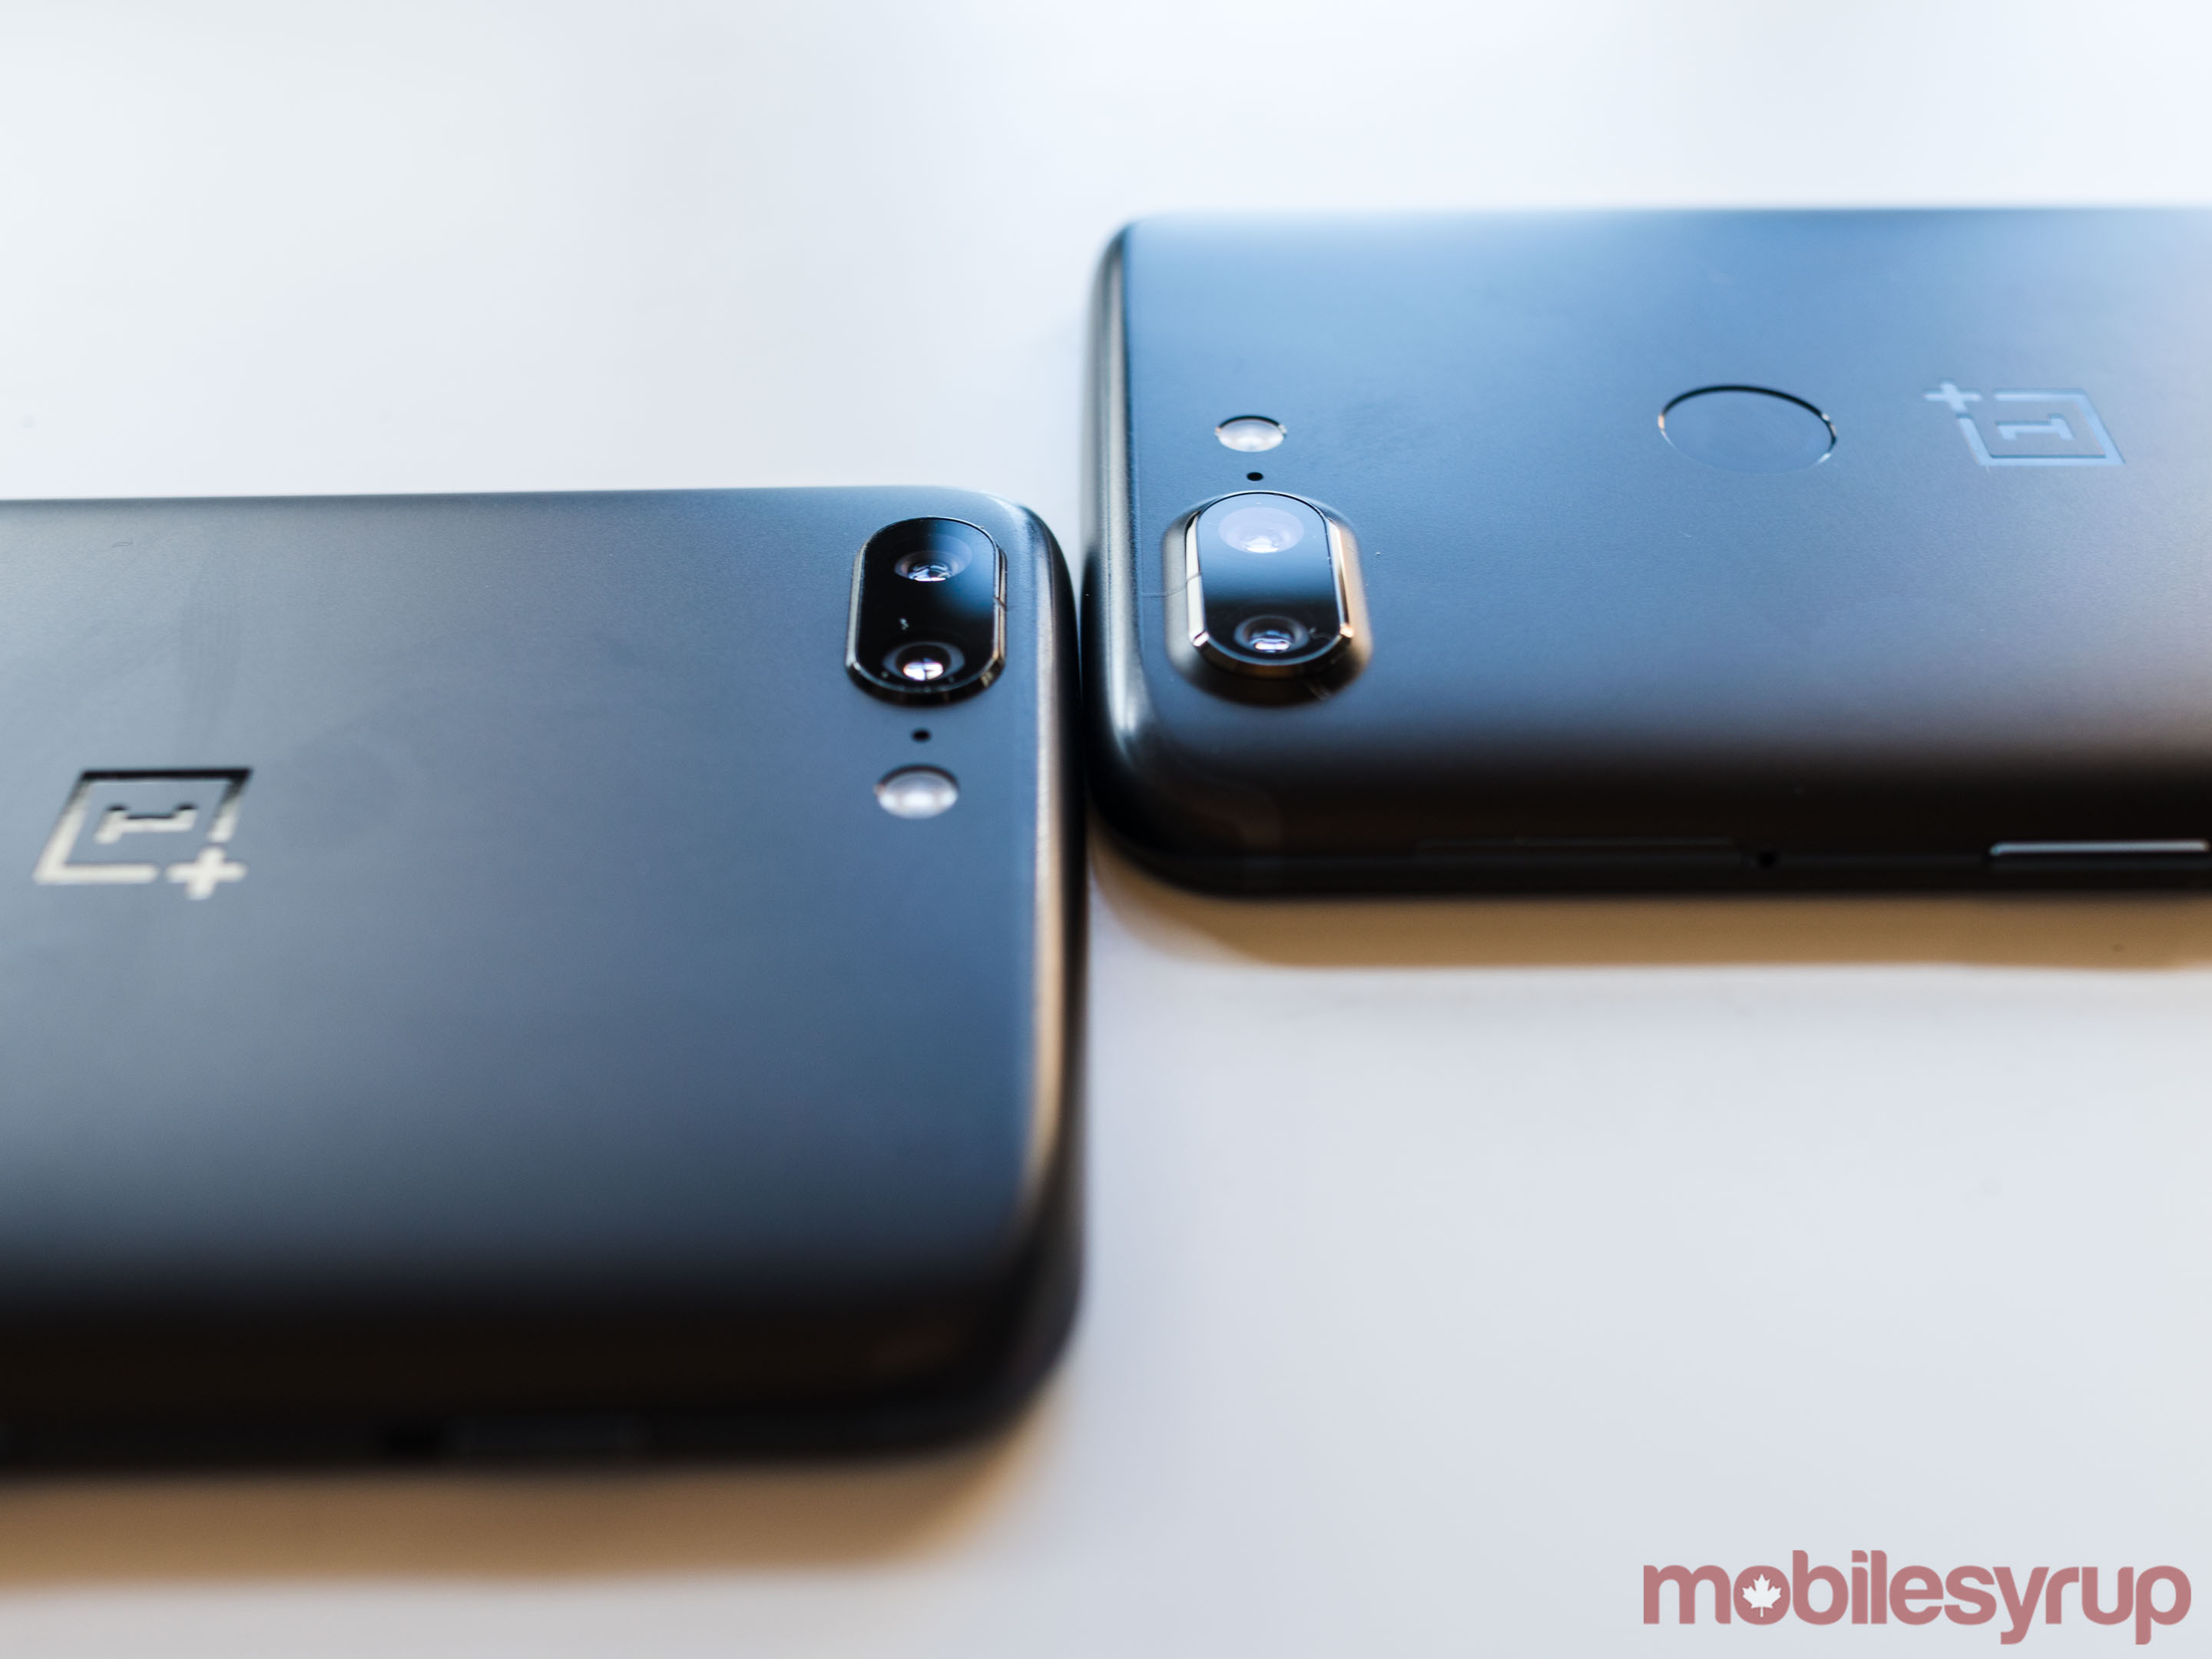 A comparison of the OnePlus 5 and 5T's camera bumps